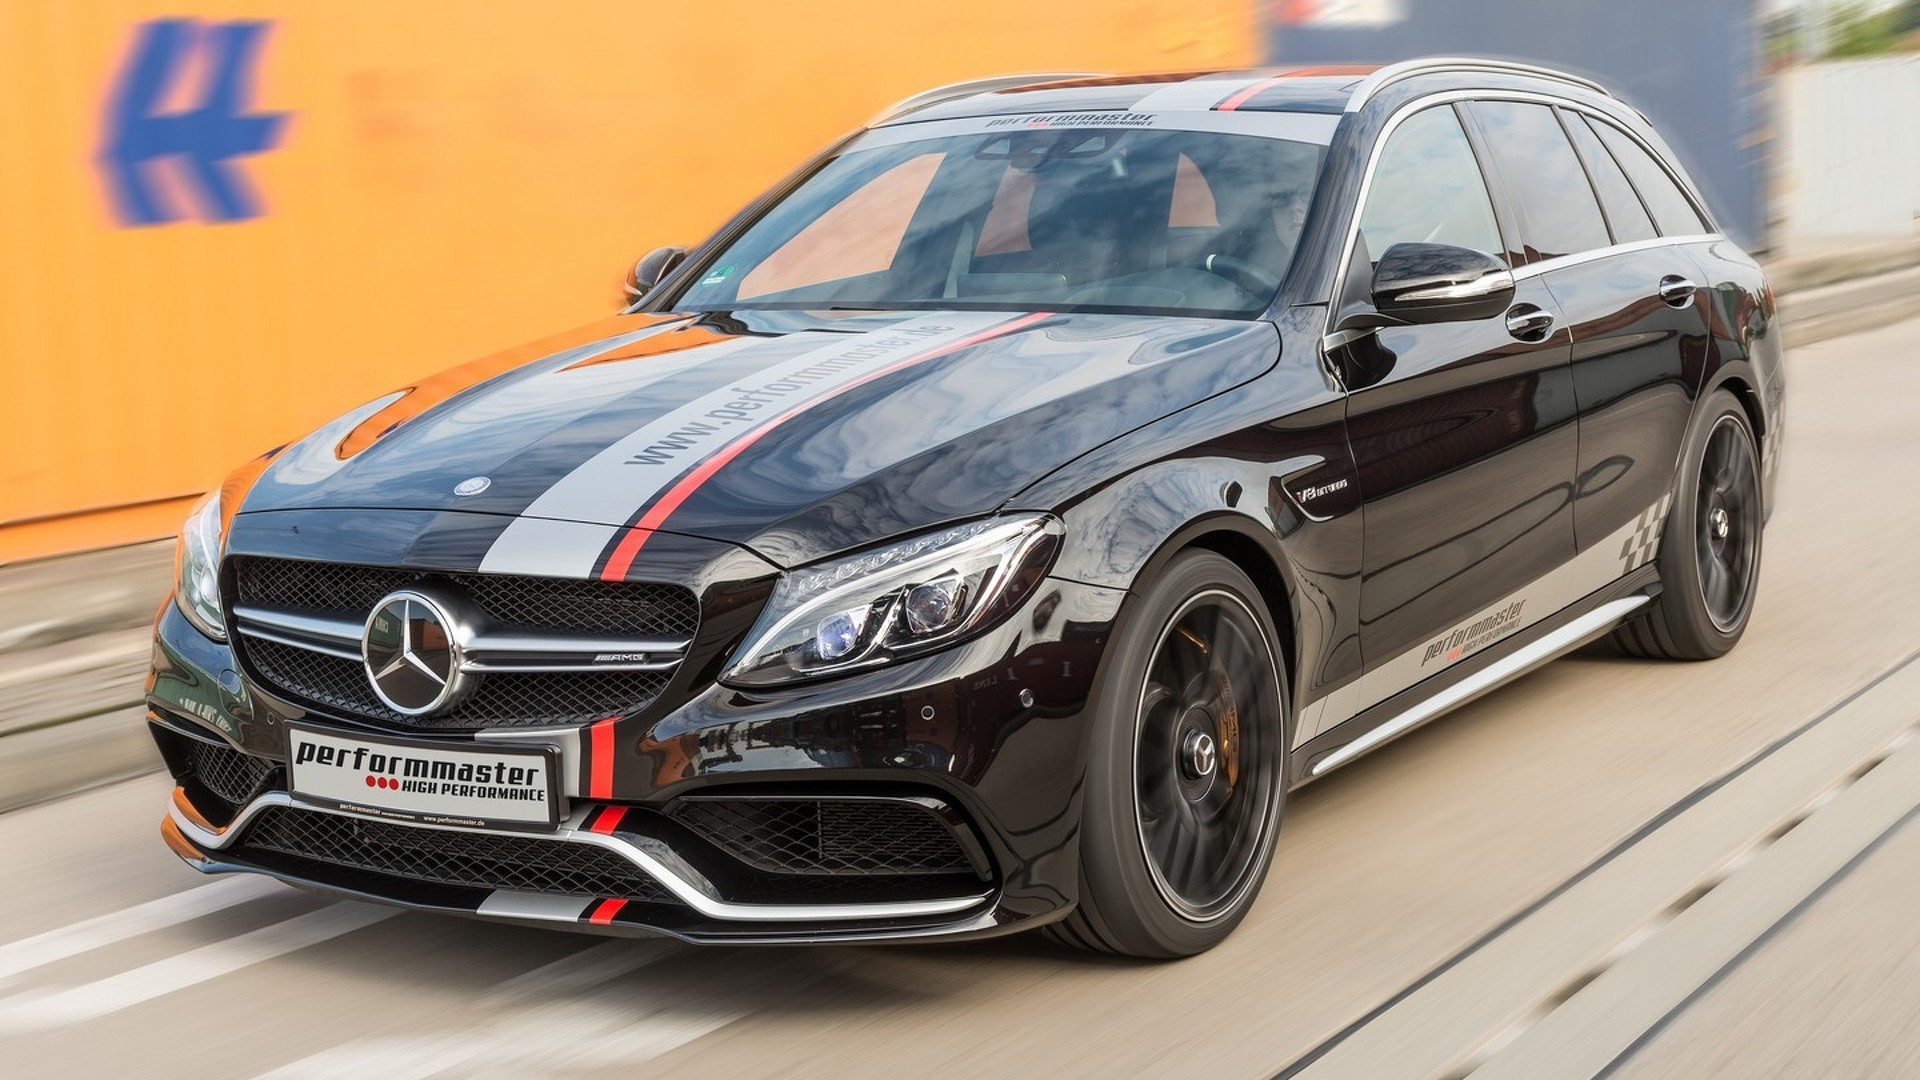 Mercedes-AMG C63 S Estate by performmaster packs a mighty 612 PS punch